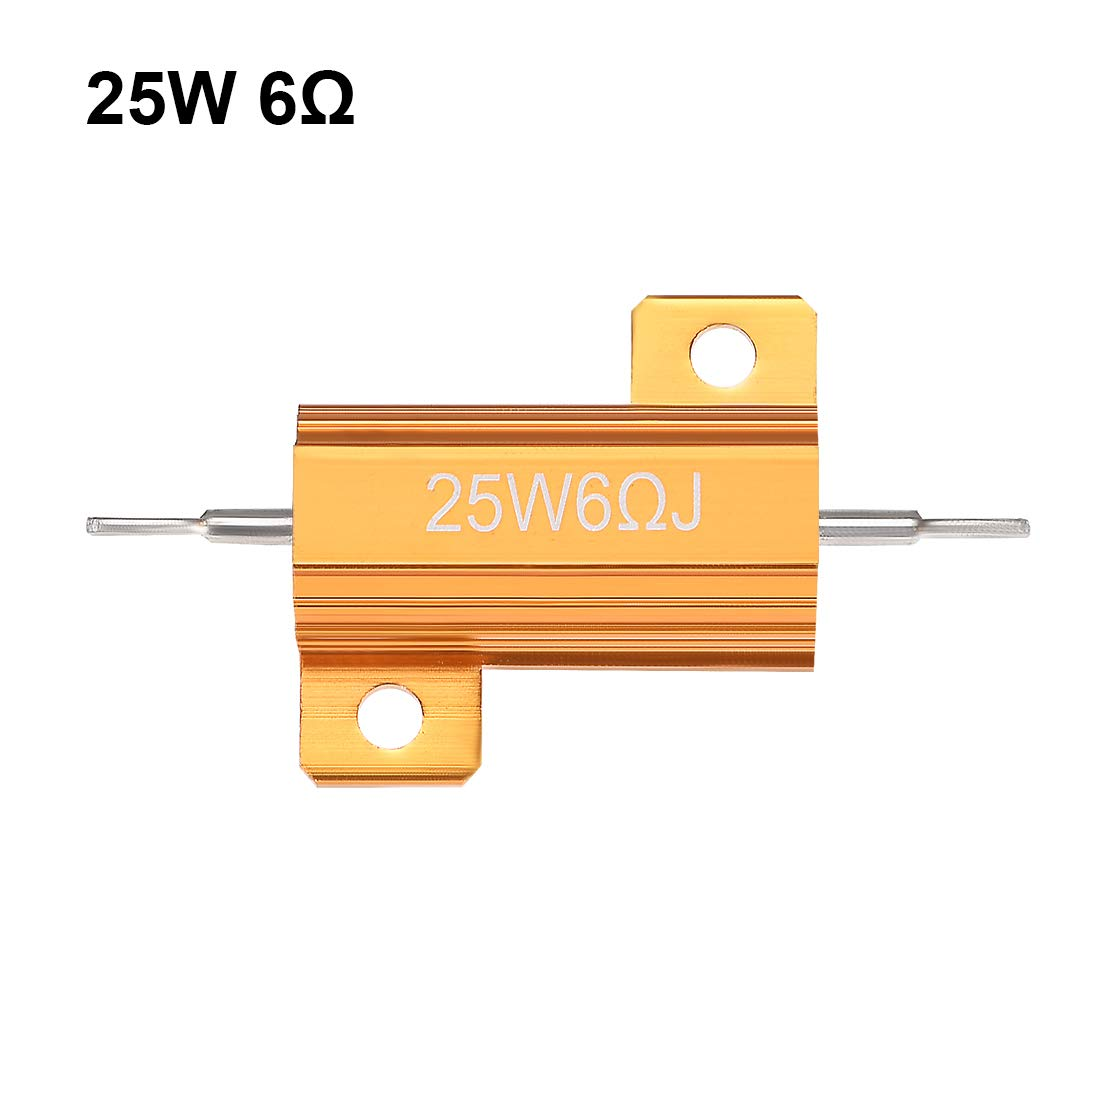 sourcingmap 25W 0.1 Ohm 5/% Aluminum Housing Resistor Screw Tap Chassis Mounted Aluminum Case Wirewound Resistor Load Resistors Gold Tone 5 Pcs